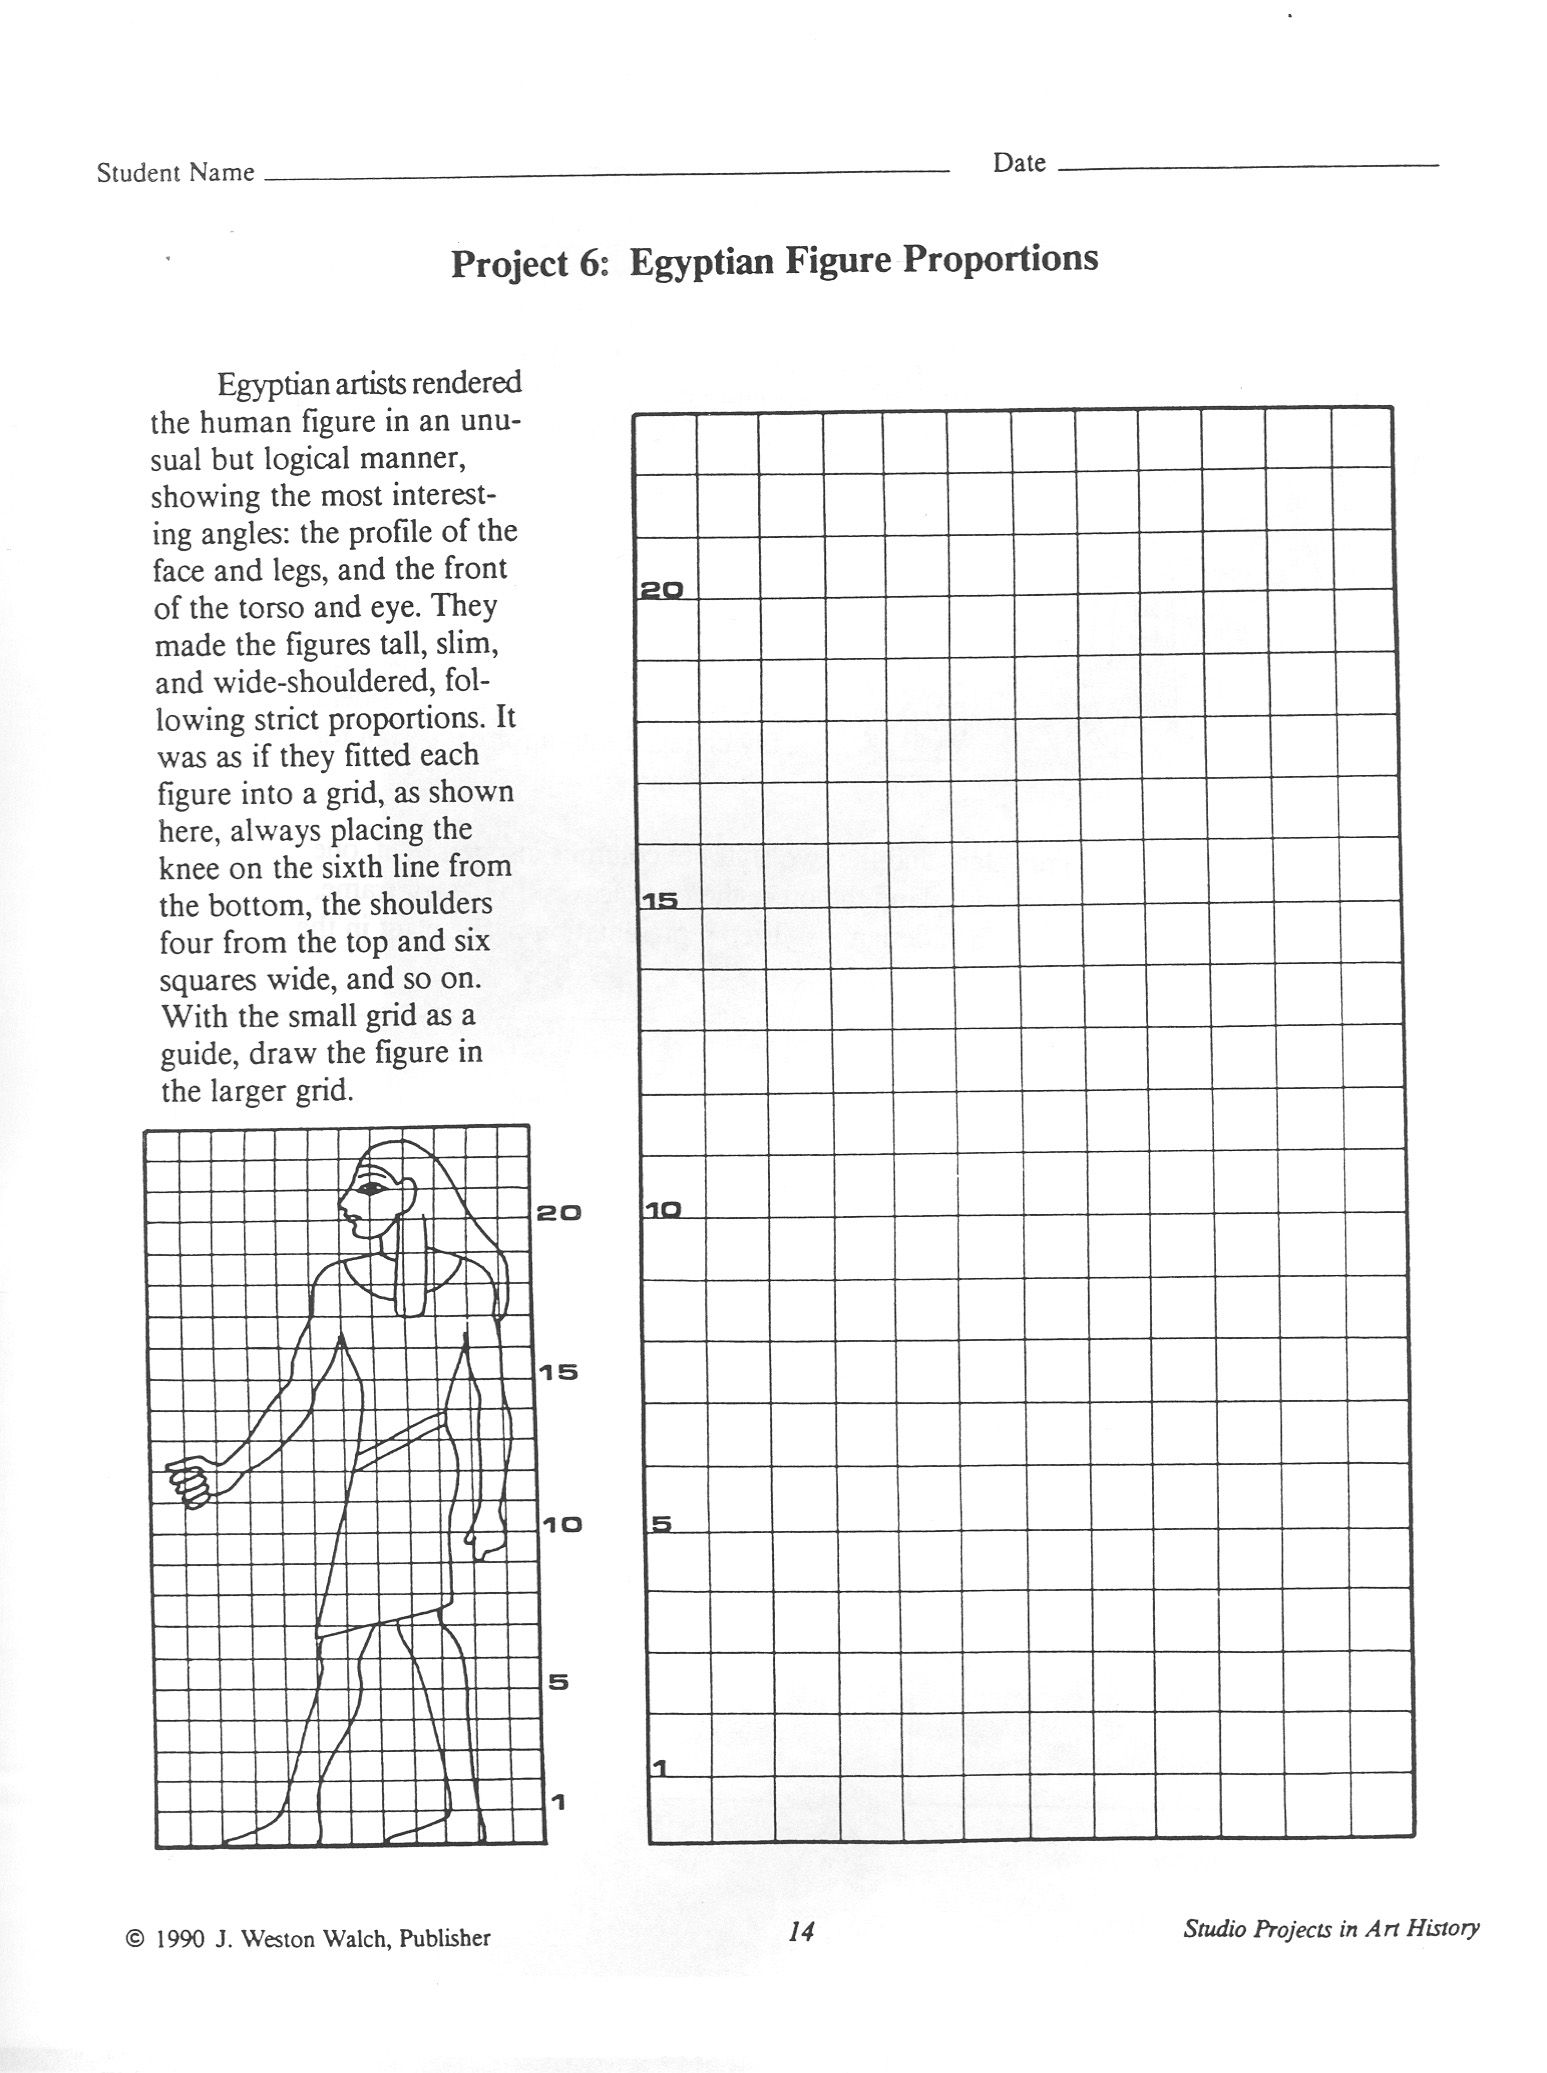 Worksheets Ancient Egypt Worksheets egyptian art handout 5 figure proportions ancient proportions